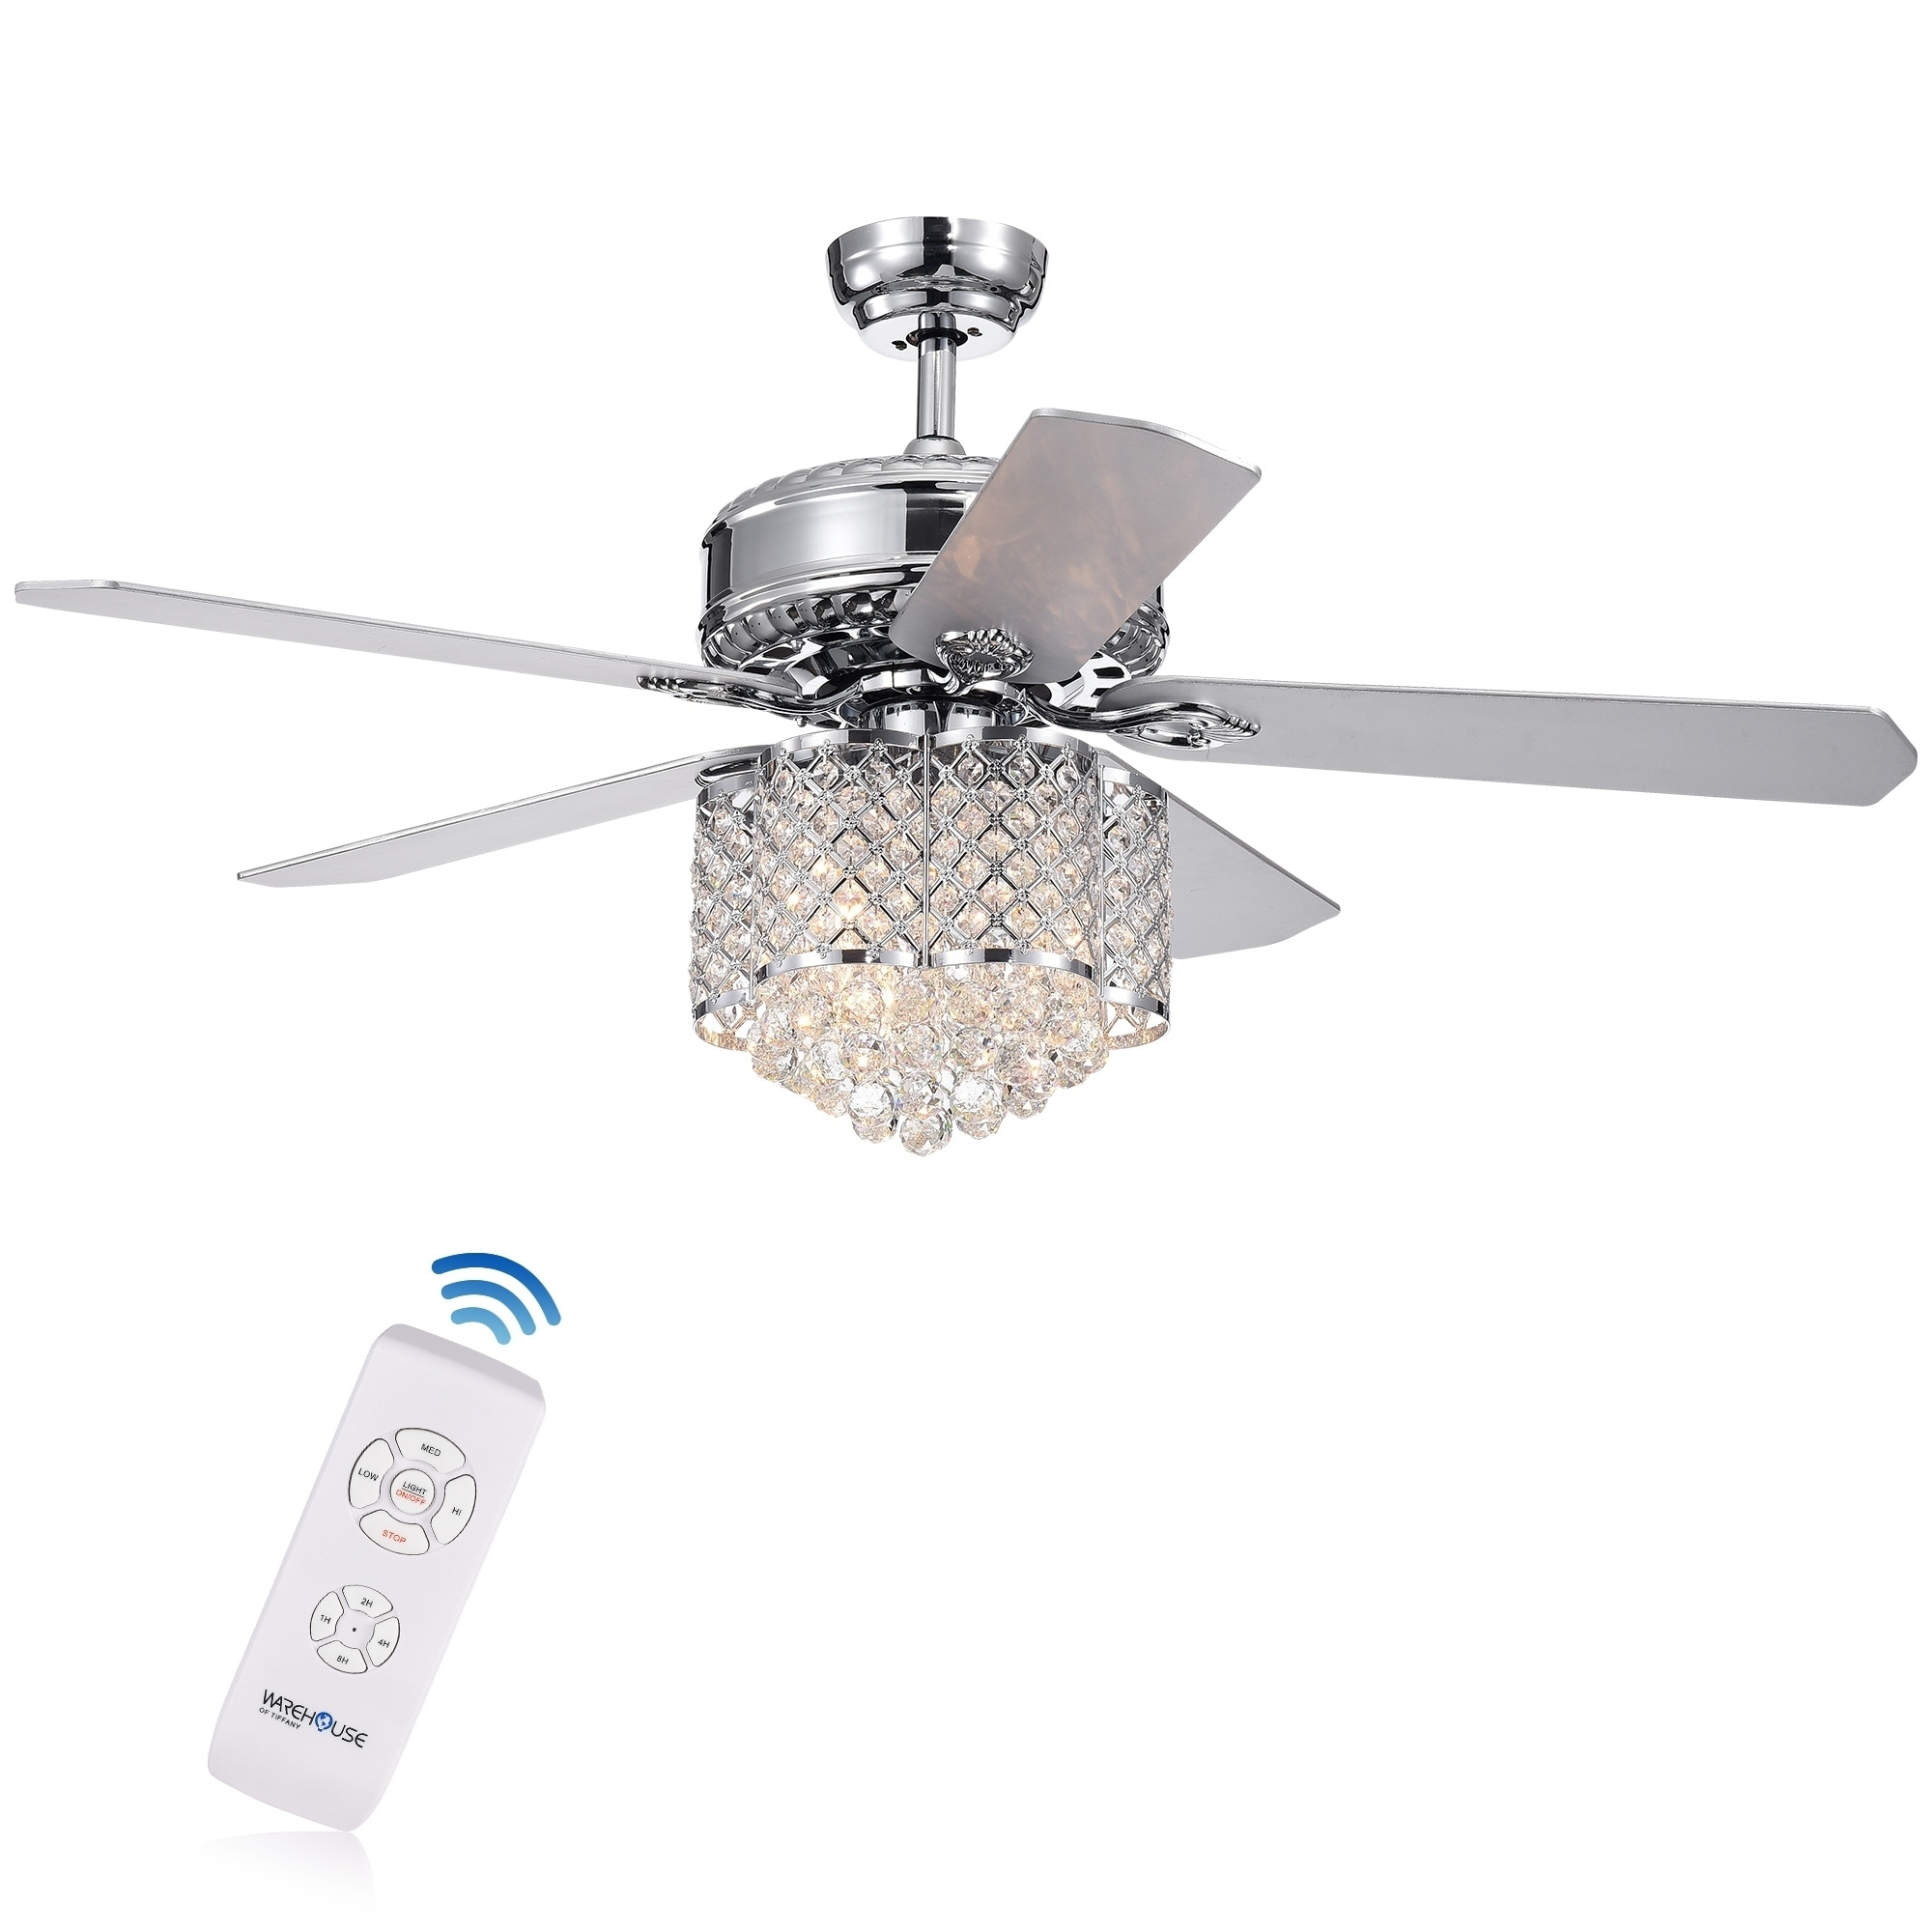 Chrome Ceiling Fan With Remote Control Review Home Decor